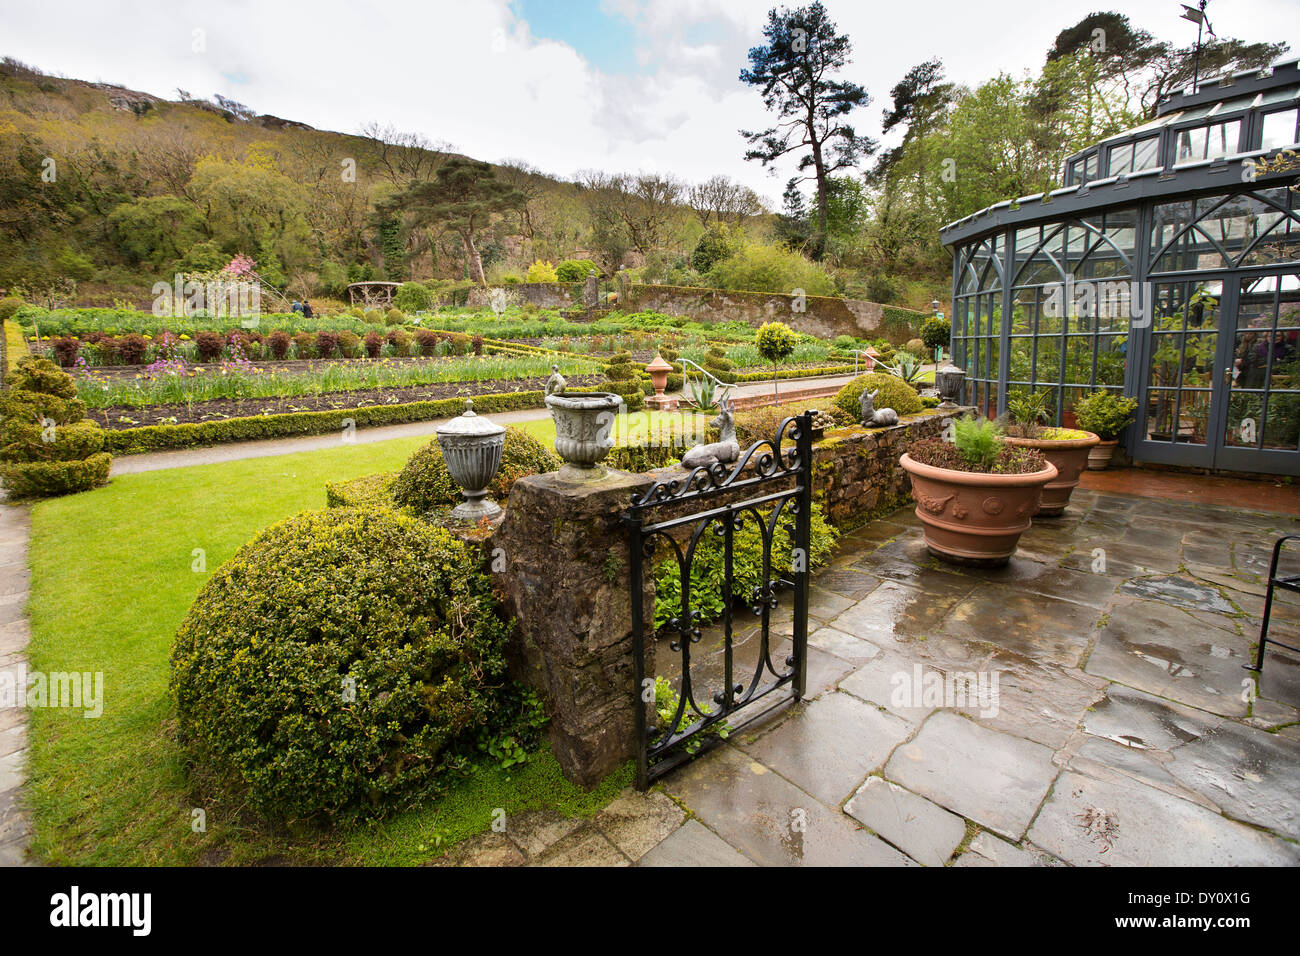 Ireland, Co Donegal, Glenveagh Castle formal gardens and conservatory - Stock Image